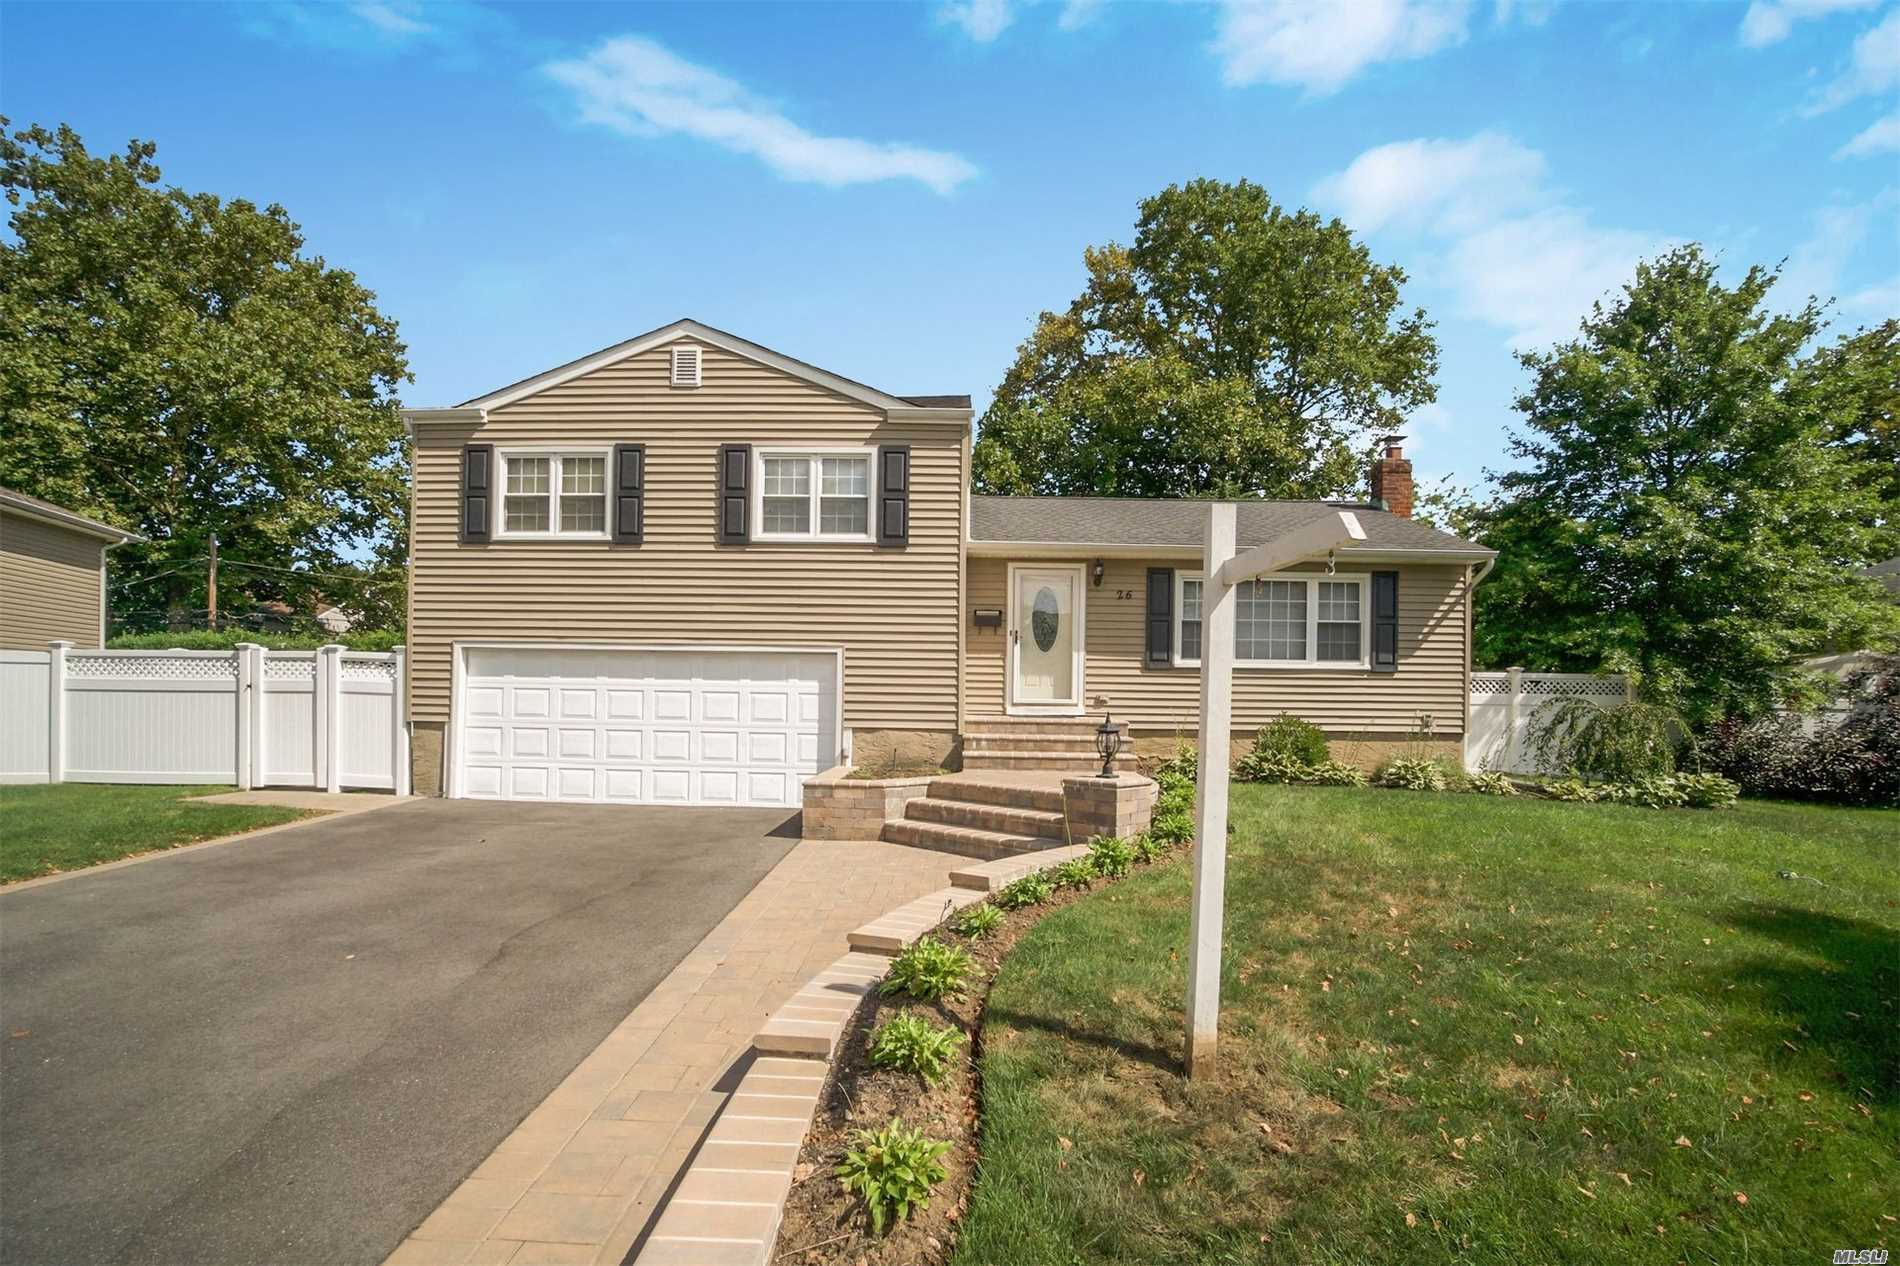 Beautiful Split Level Home Offering Mbr With Full Bath, Plus 2/3 Bedrooms, Full Bath, Fdr, Vaulted Ceiling In Living Room, High Hats, Updated Kitchen, Plenty Of Storage, Large Private Backyard And Deck, Fireplace, Ceiling Fans, Quiet Block But Close To Shopping And Expressways